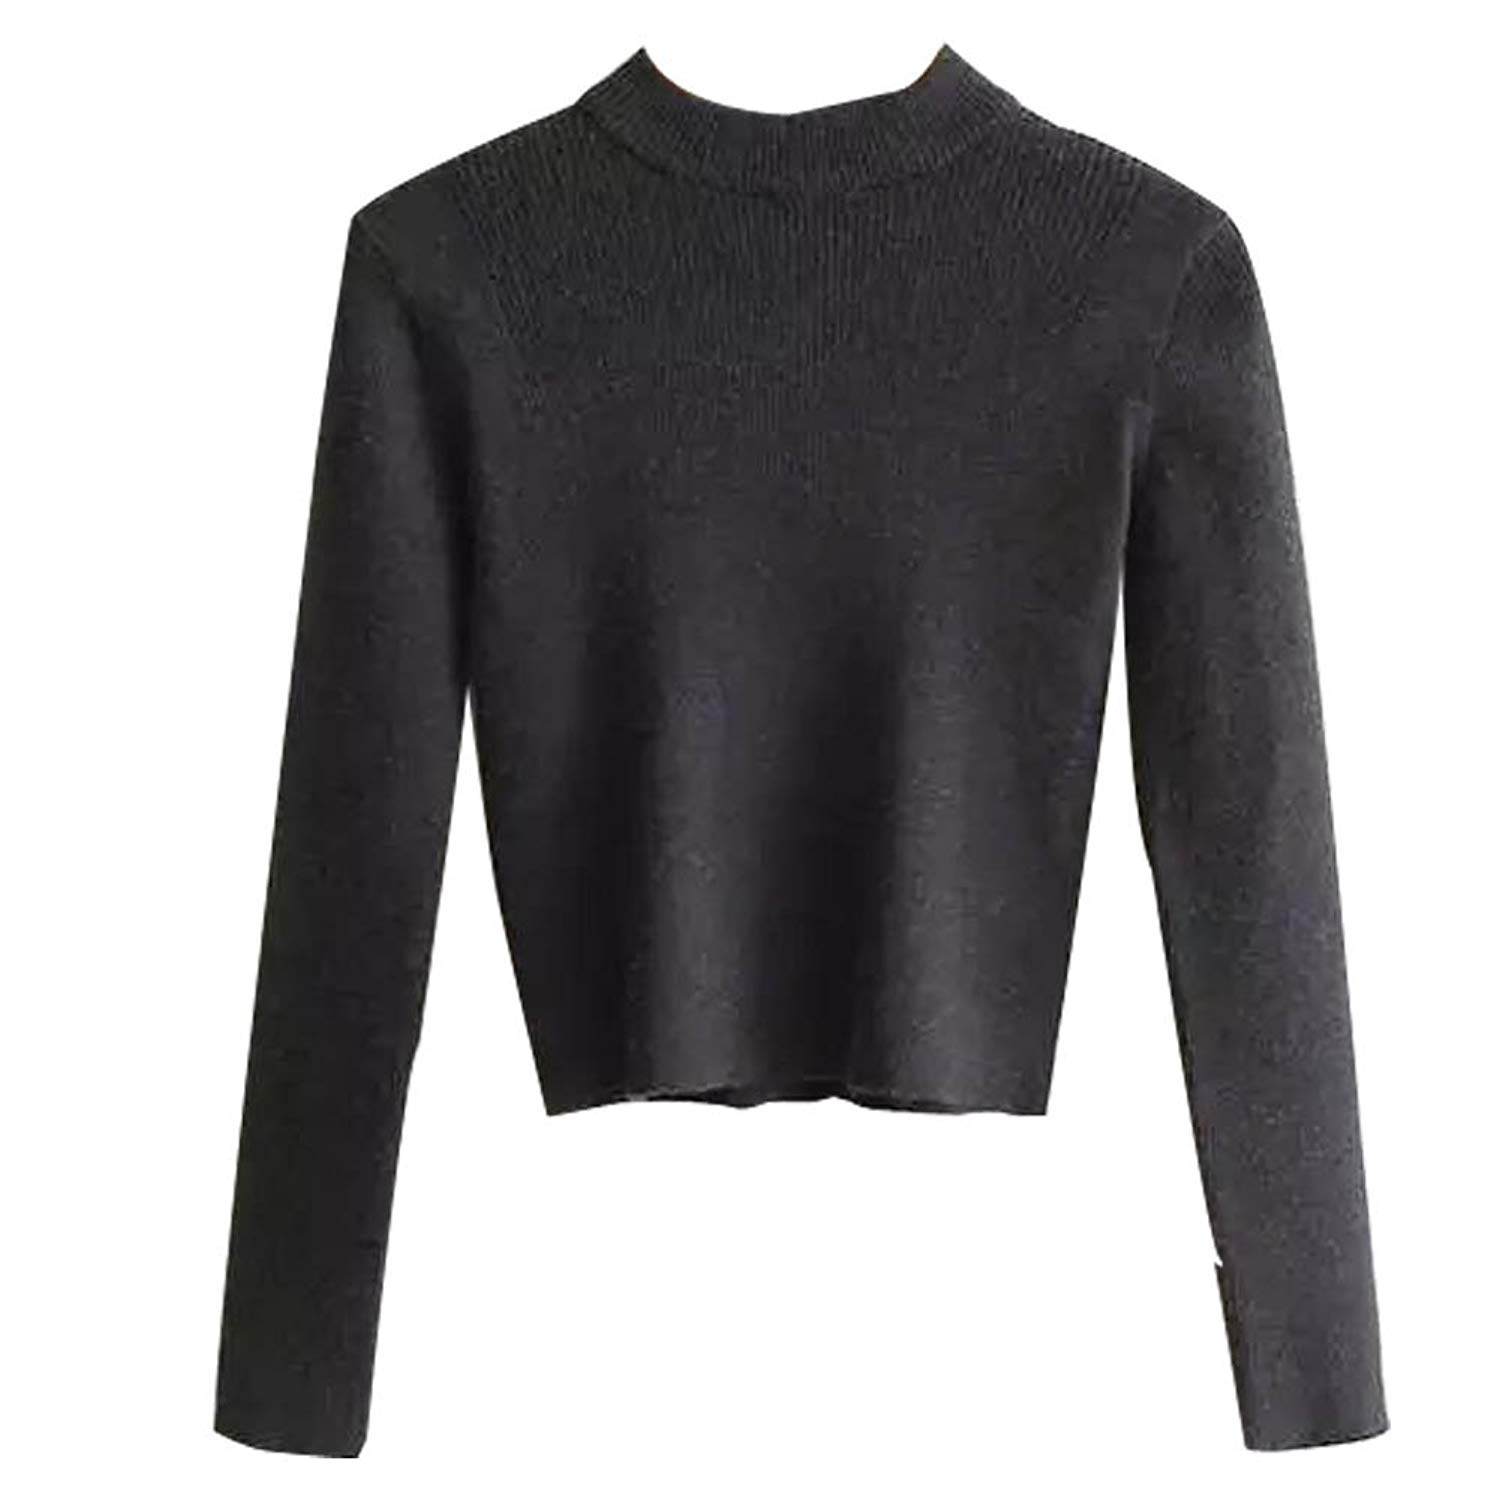 07a3c320f2 Get Quotations · Ashir Aley Mock Neck brown Mock Neck Cropped Knitted  Pullover Small Short Sweater